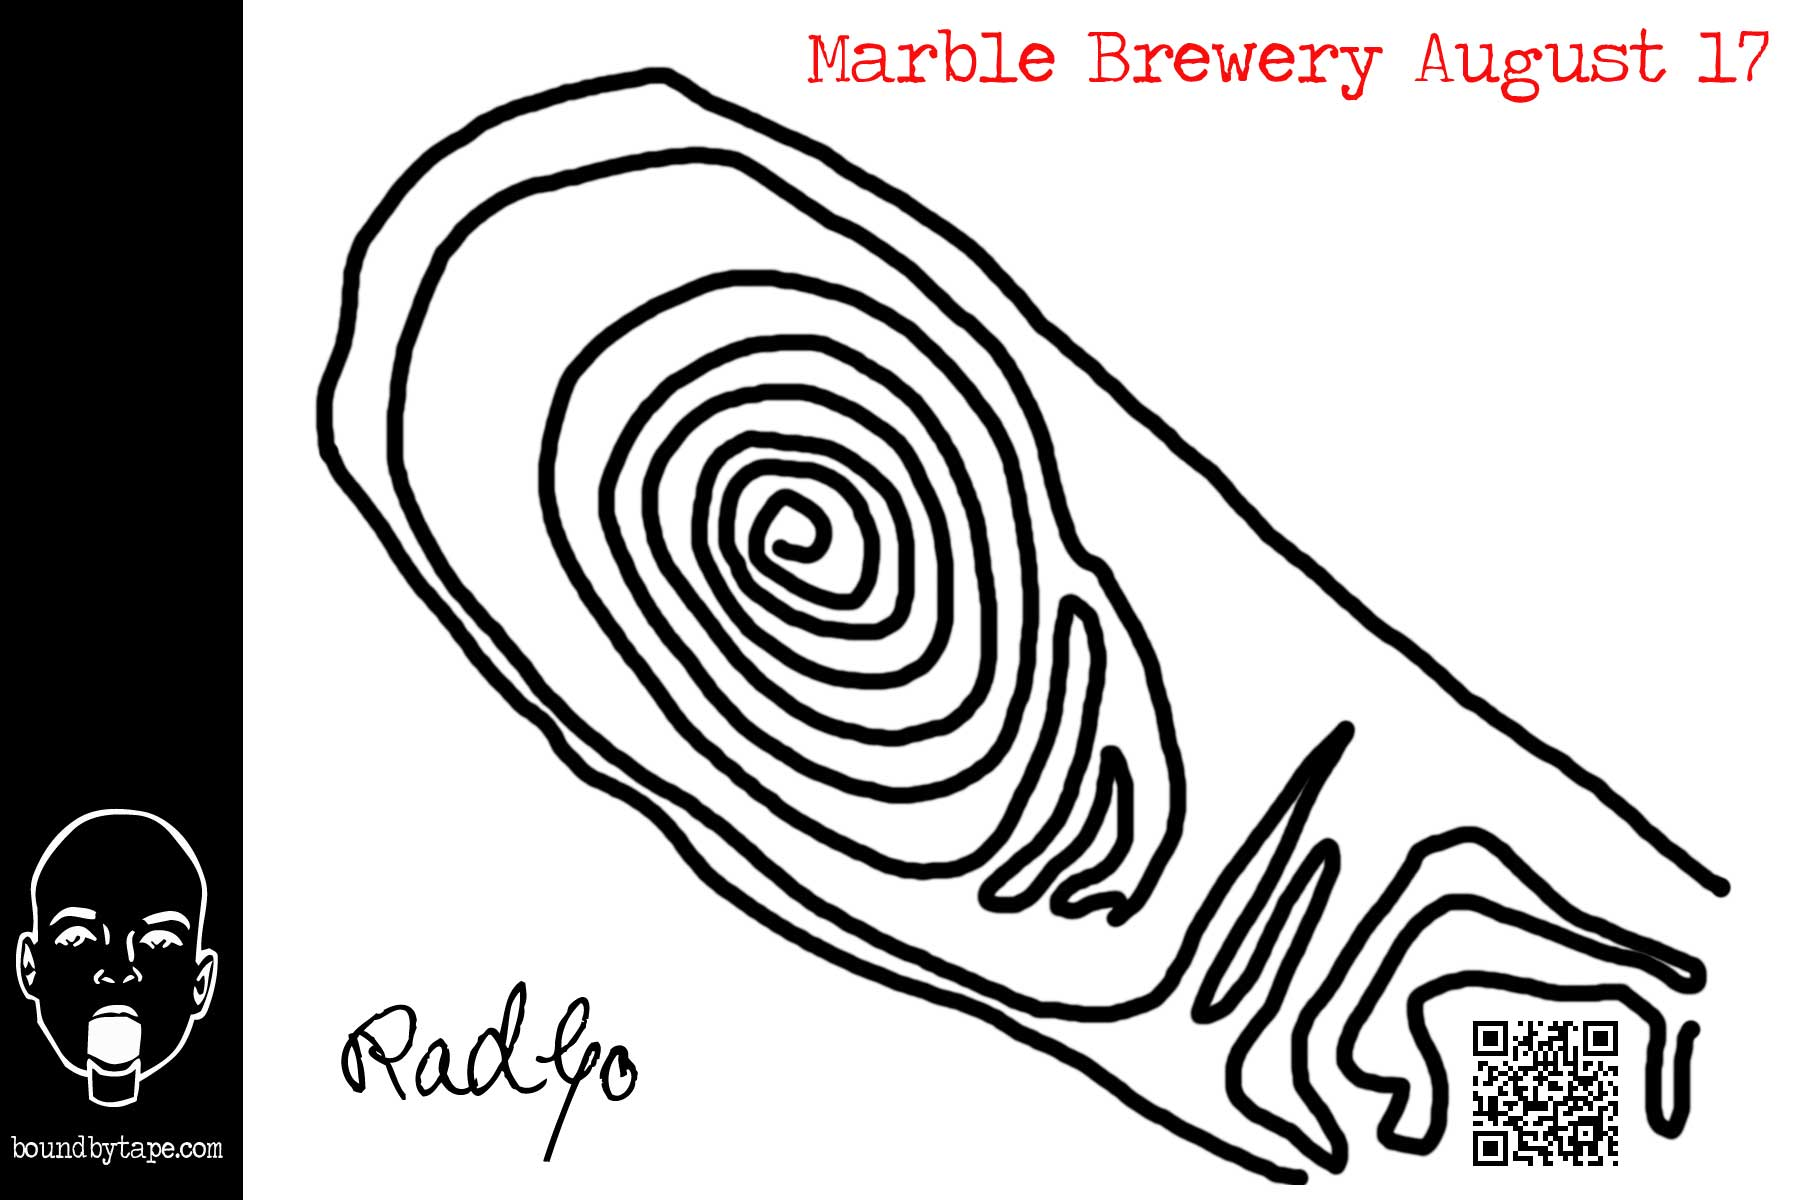 RadGo - August 17, 2011 - Marble Brewery